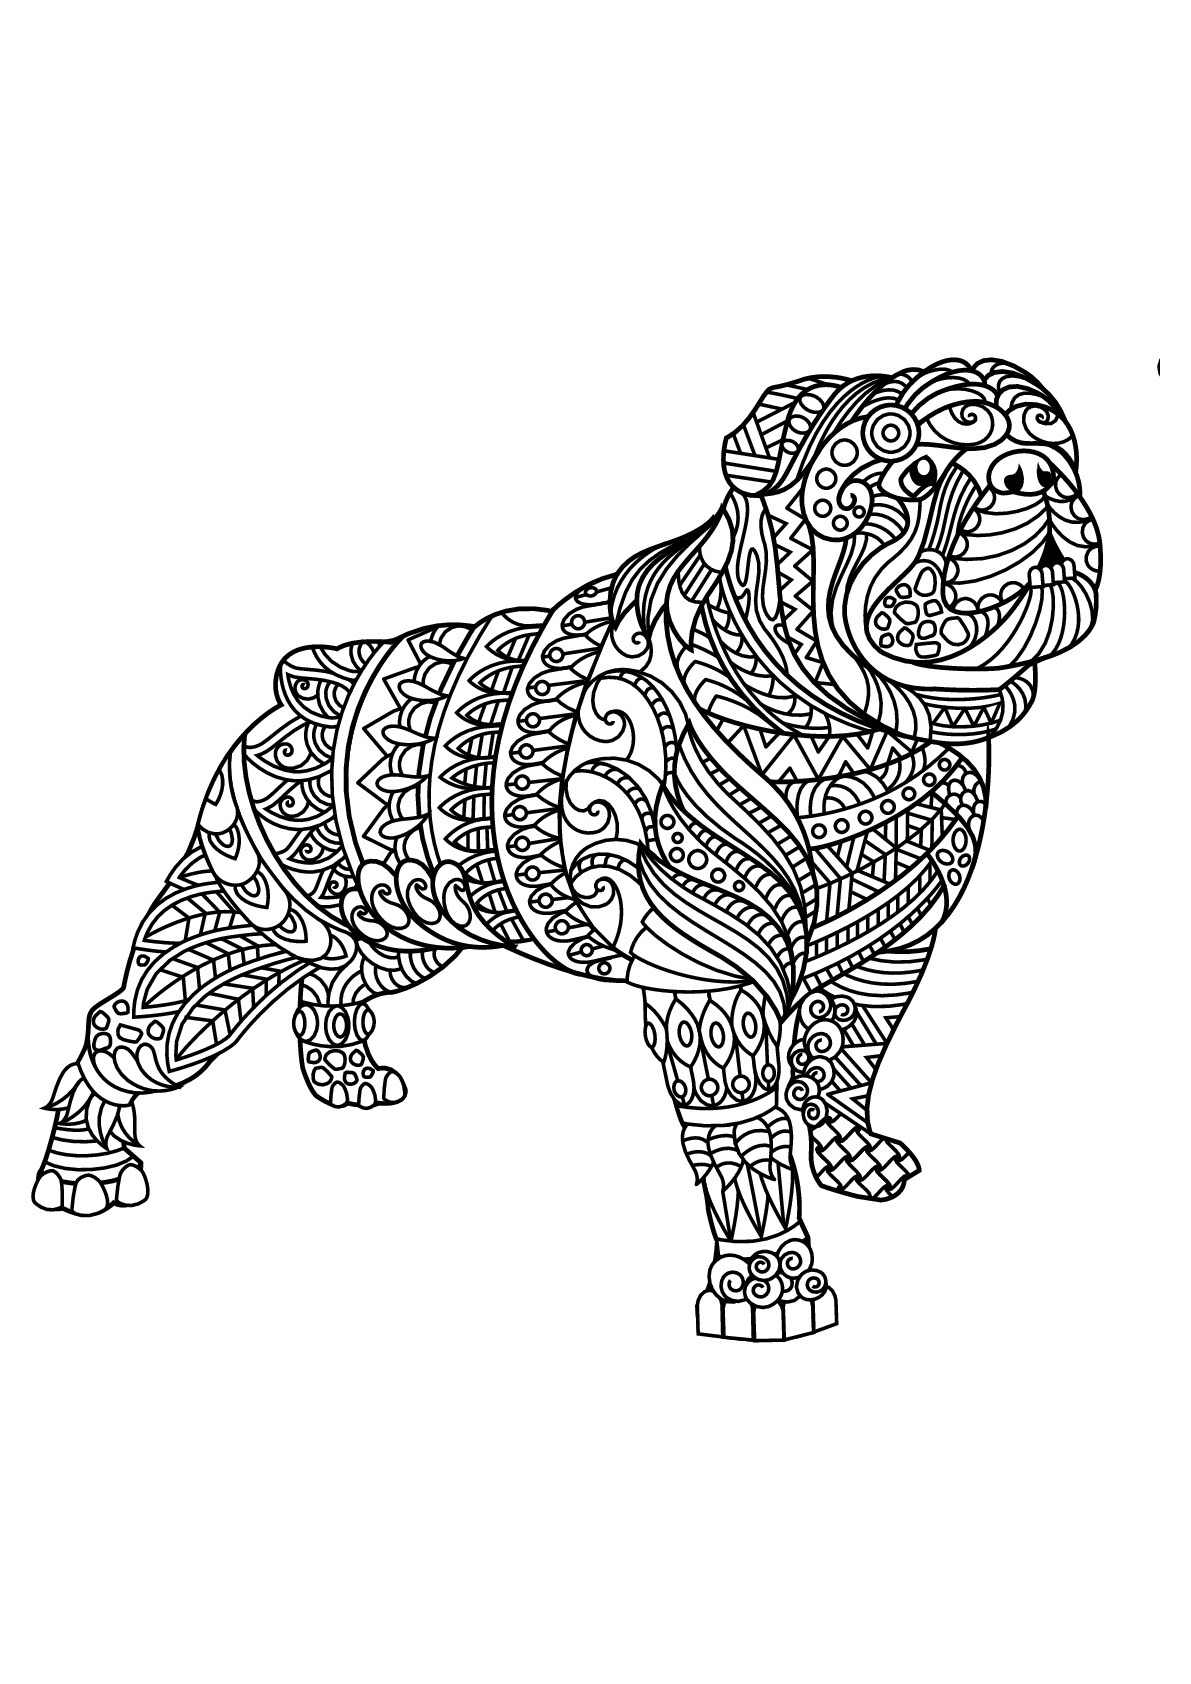 Bull Dog Coloring Page : coloring, Download, Bulldog, Coloring, Pages